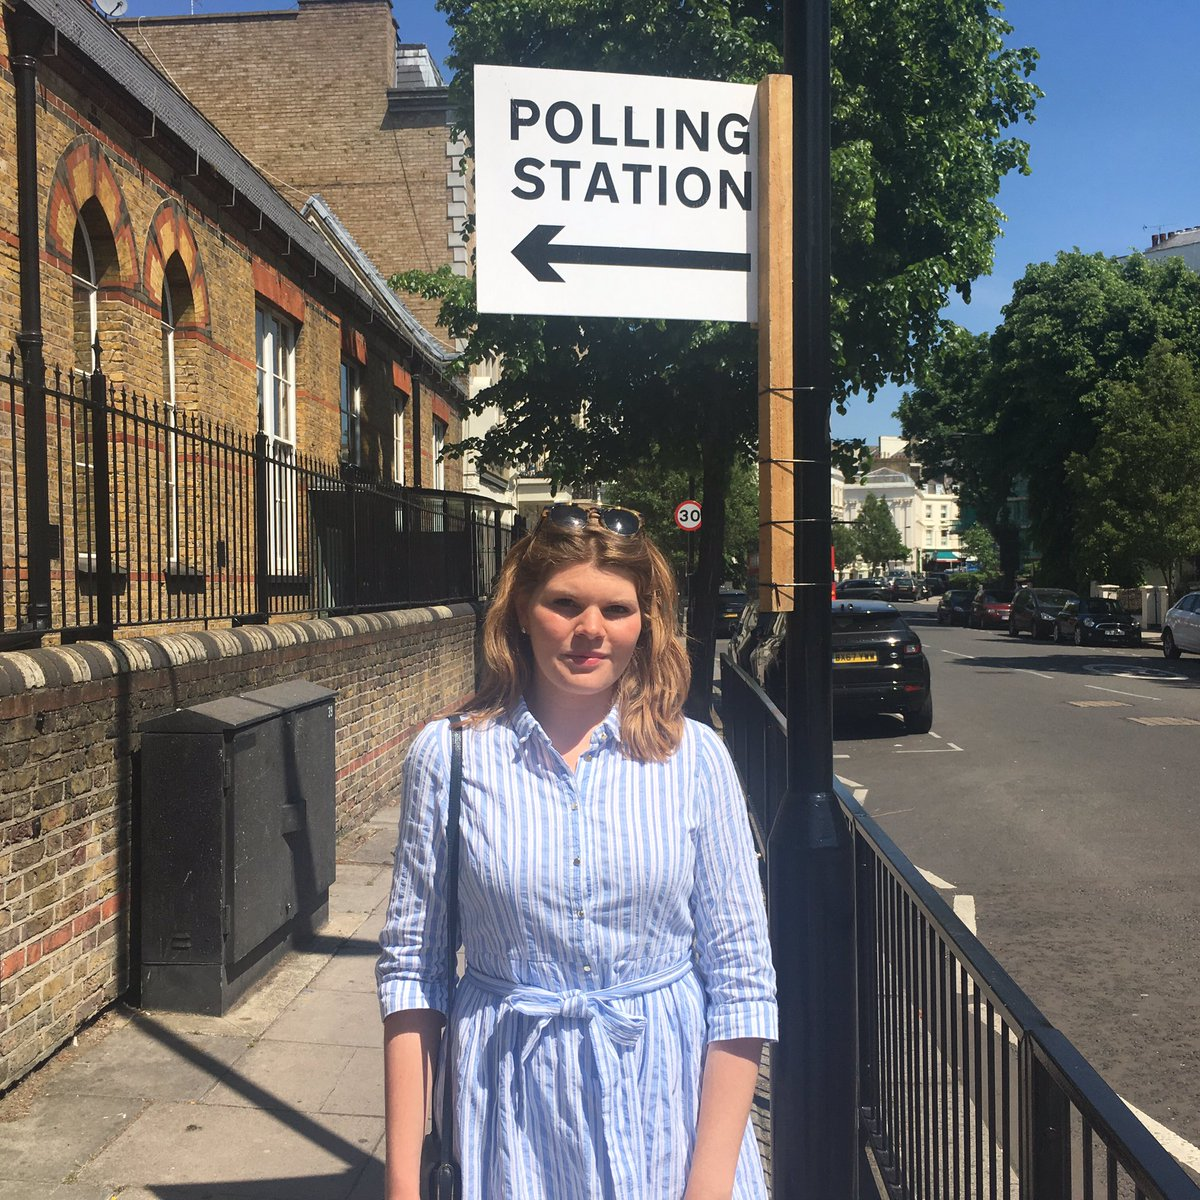 """I was just #DeniedMyVote, despite being a registered #EU citizen. At the polling station my #British husband gets the ballot while I am simply told: """"Vote in your own country!"""" @lisaocarroll @thatginamiller #EuropeanElection2019"""